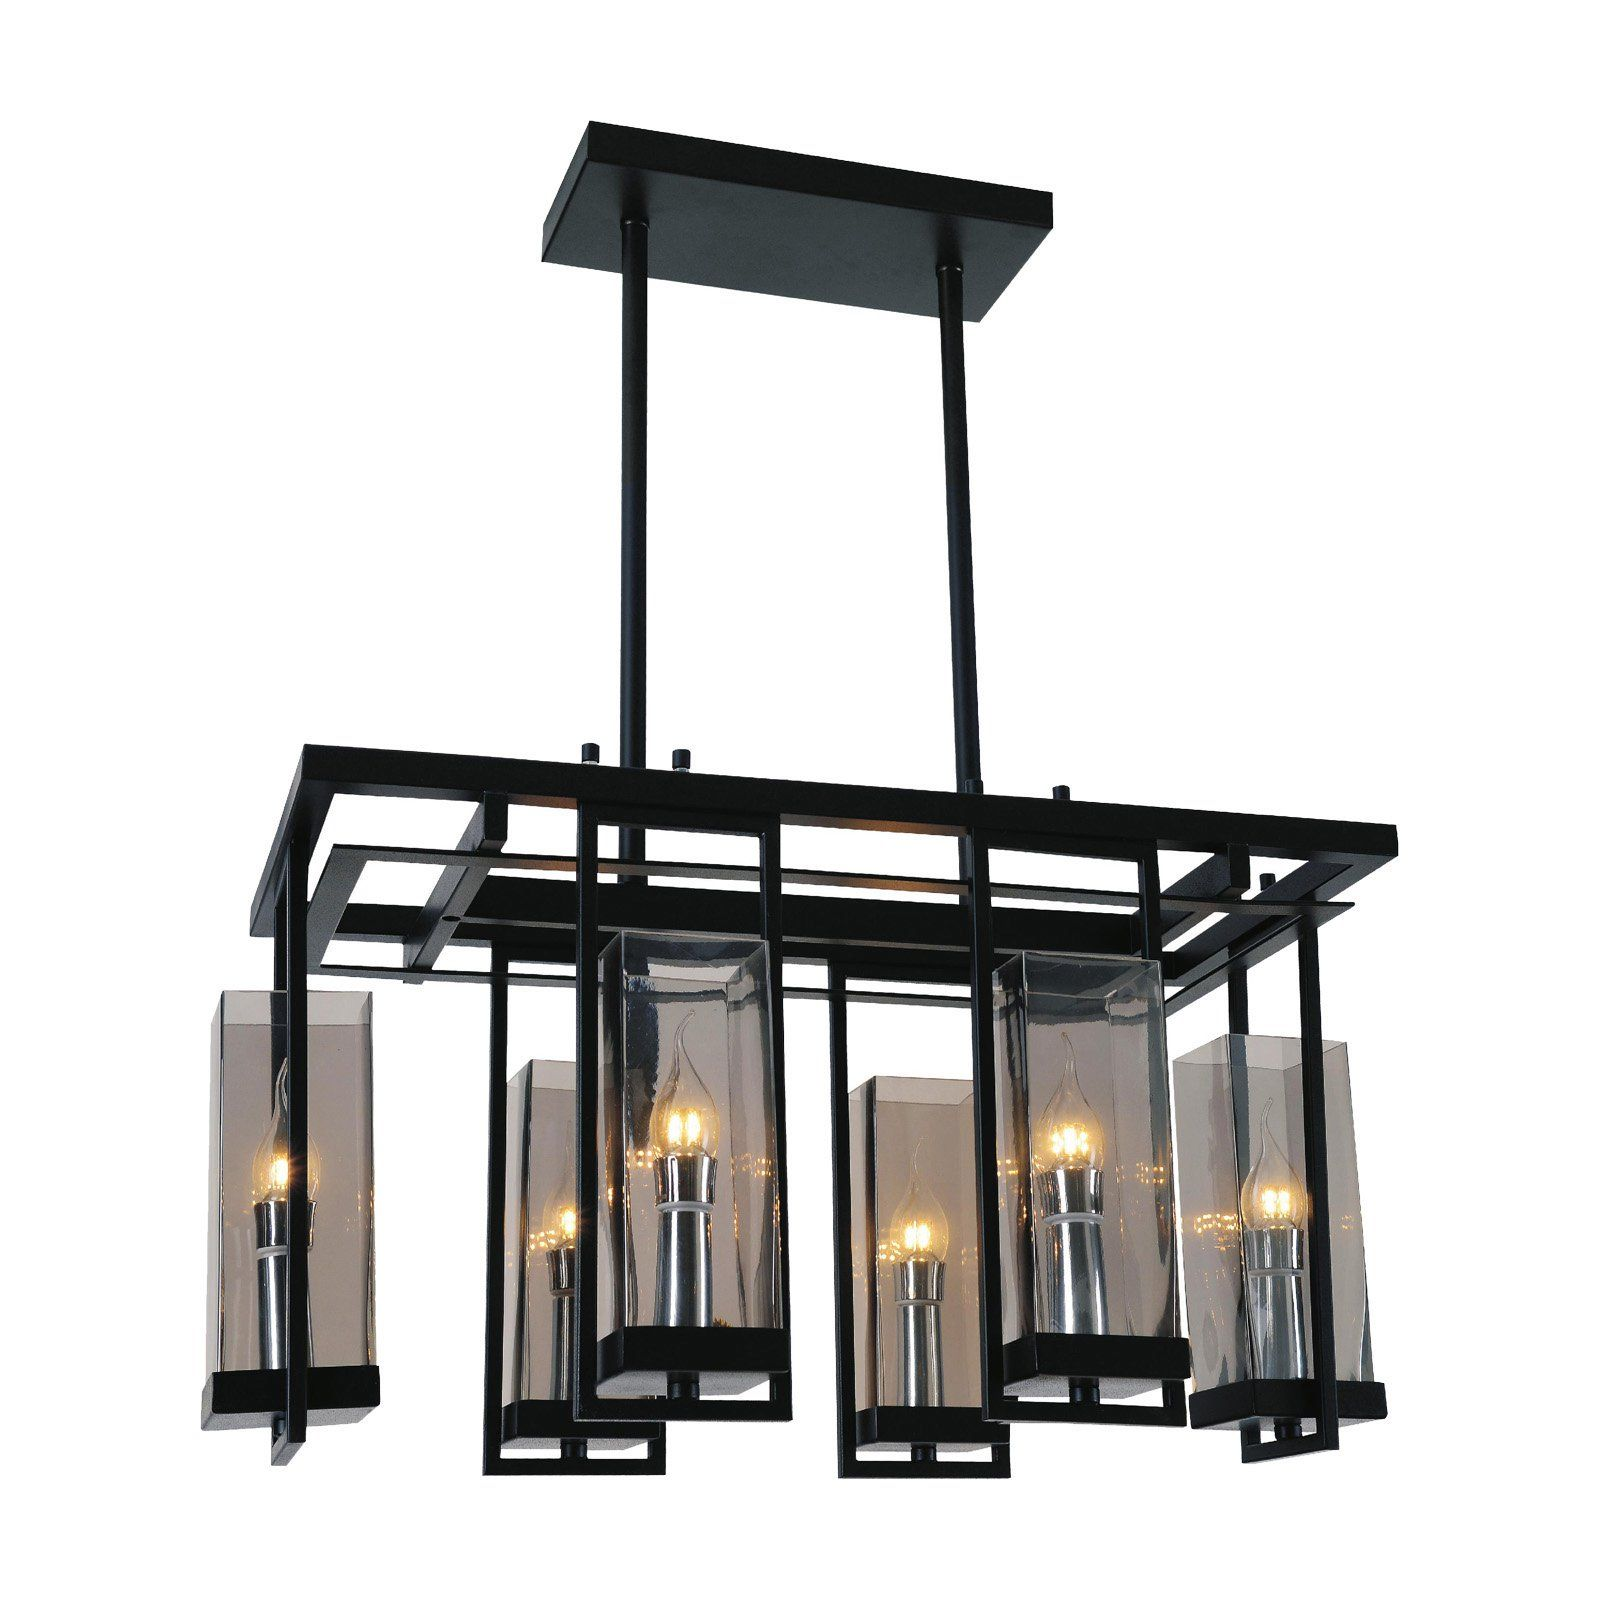 6 Light Black and Wood Rectangular Linear Chandelier with